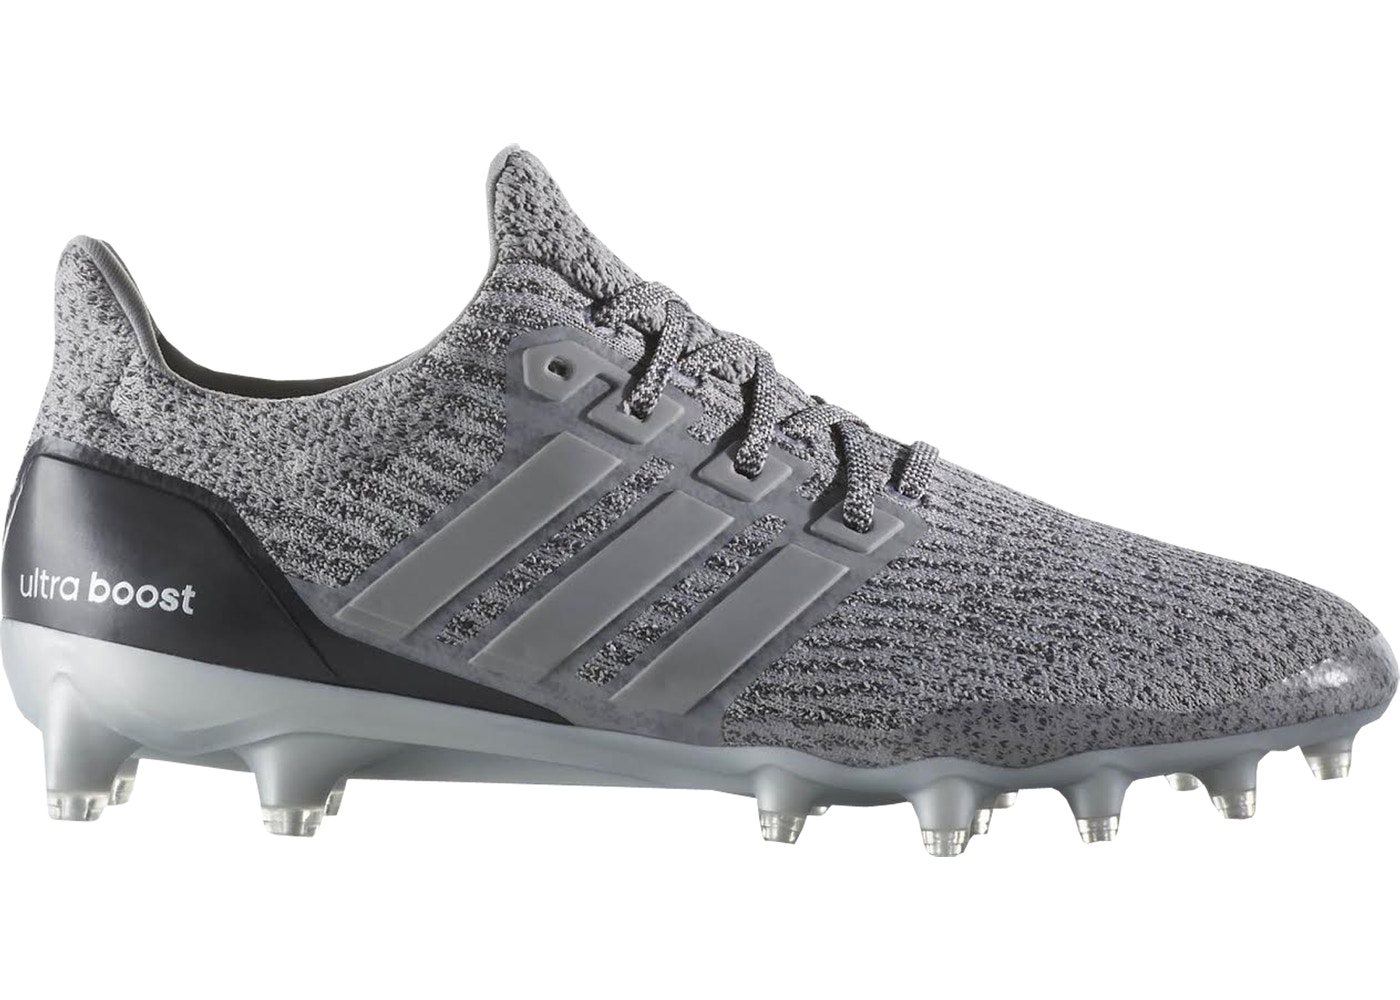 398a87f3c4e adidas Ultra Boost 3.0 Cleat Silver Pack - CG4813